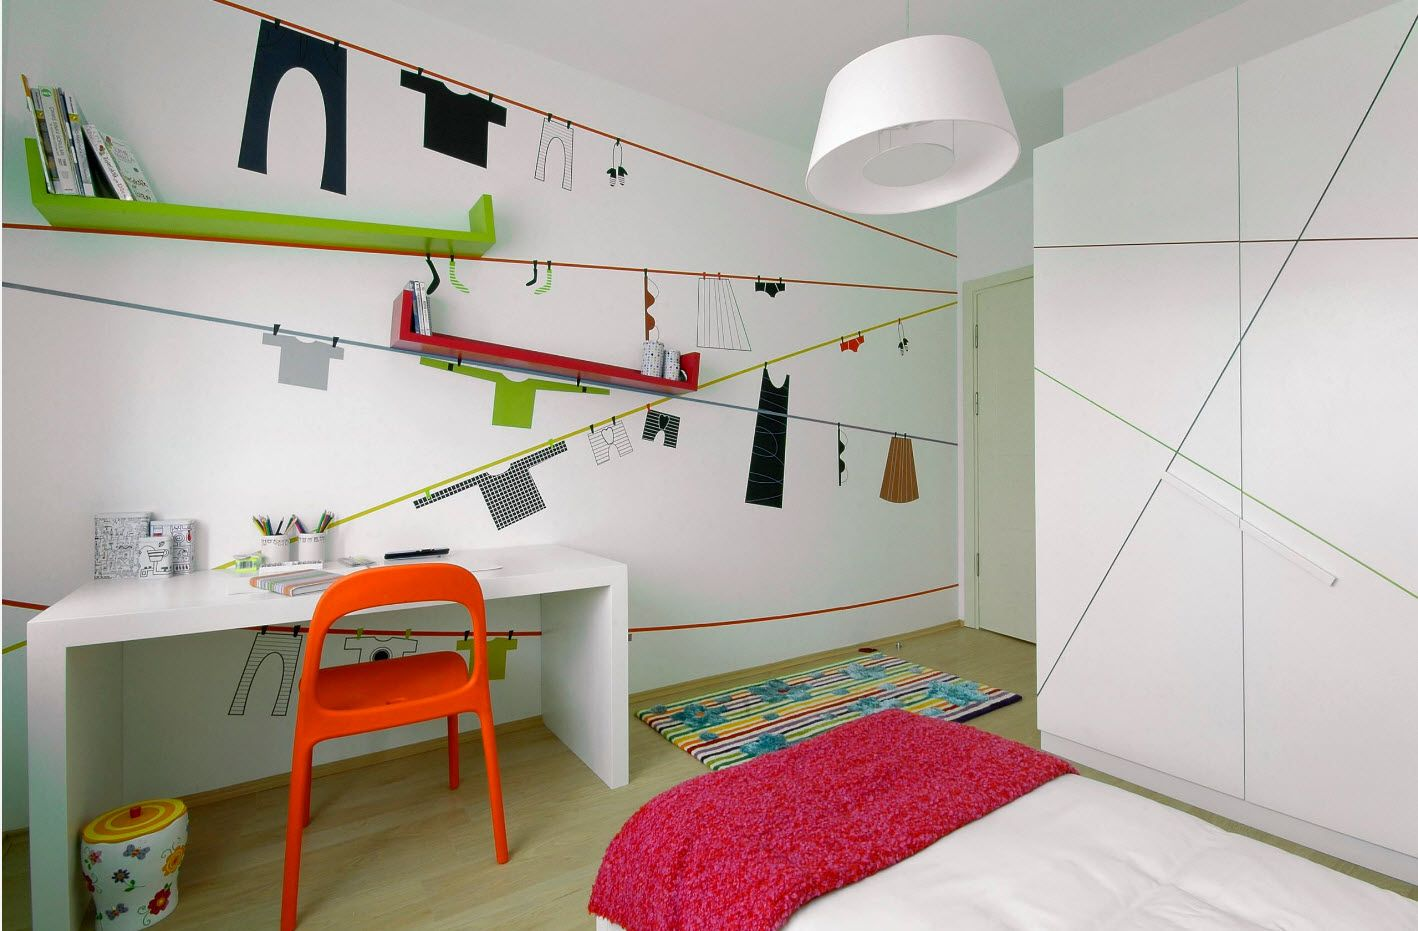 Bright furniture accents in the nice setting of the children's room